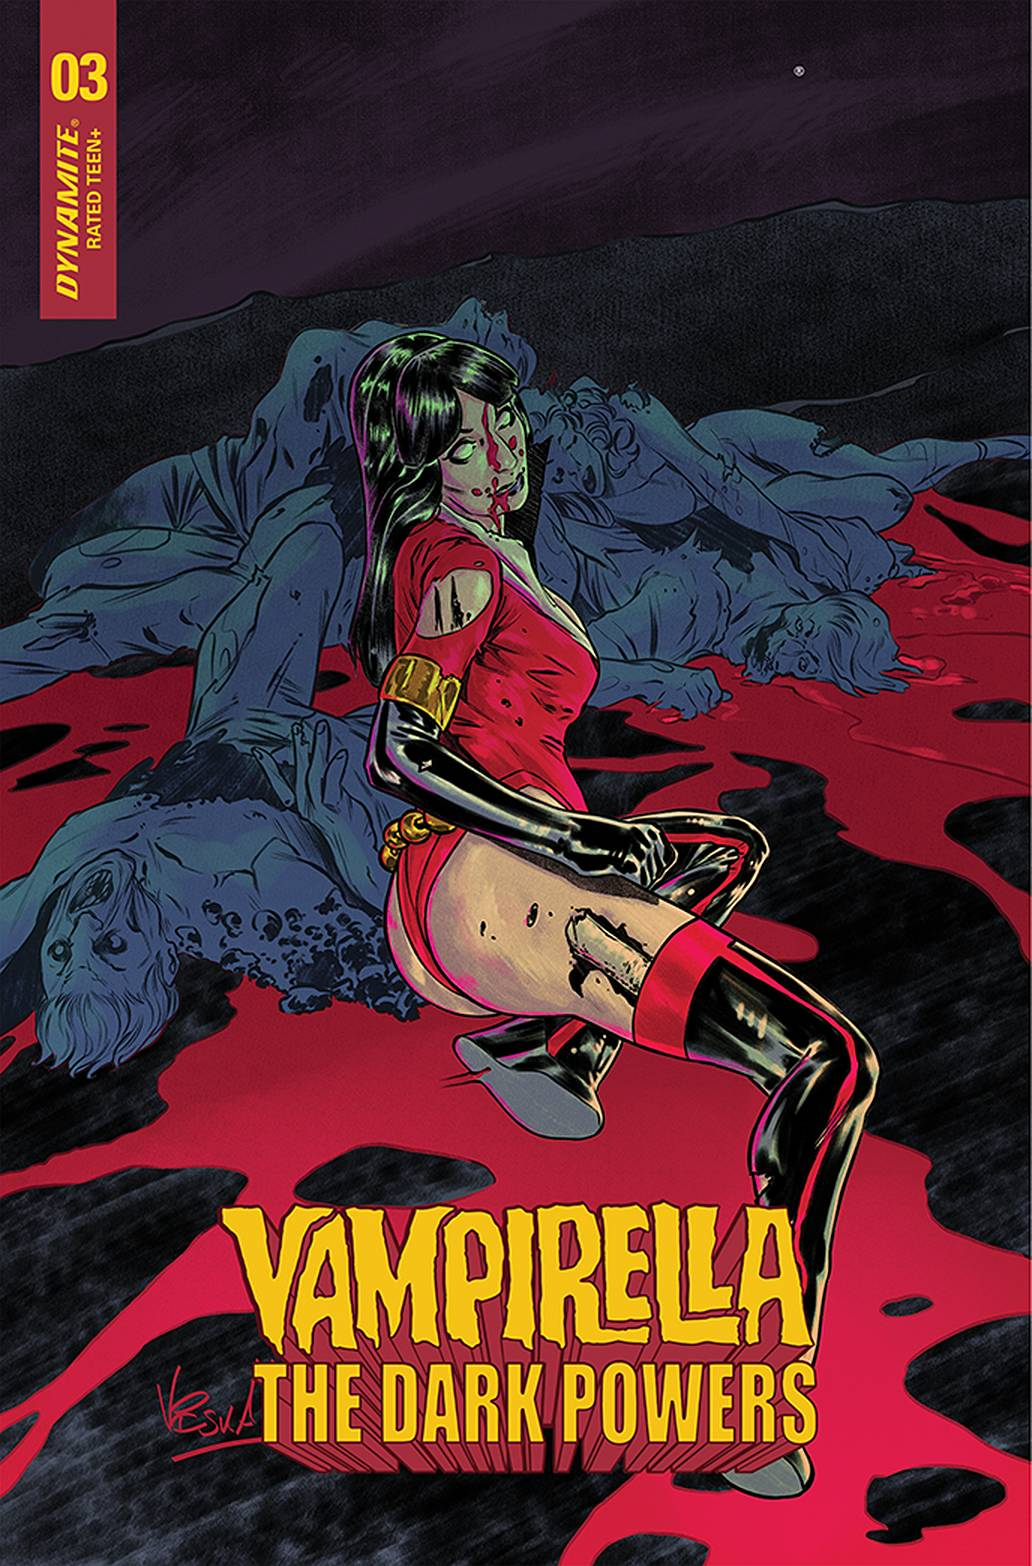 VAMPIRELLA DARK POWERS #3 15 COPY FEDERICI INCV